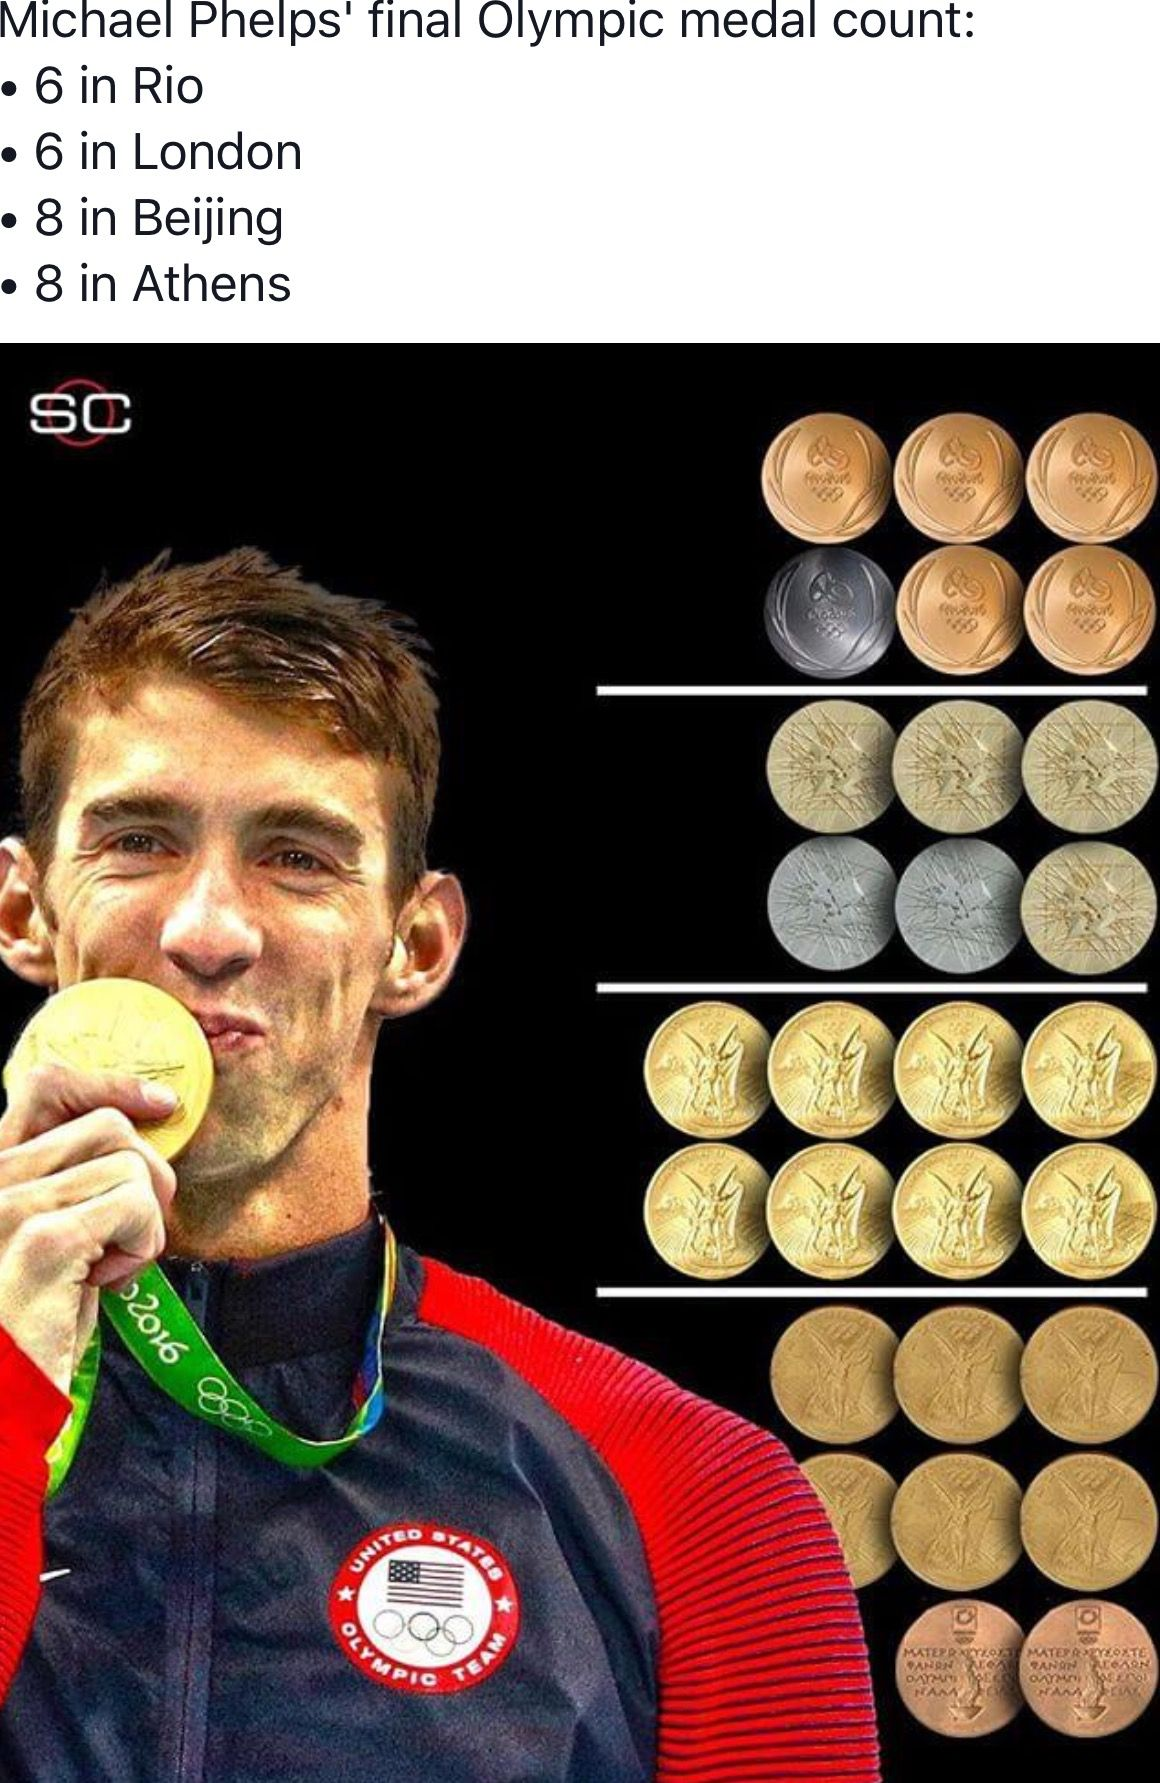 The Most Decorated Olympian Ever Is A Swimmer Michael